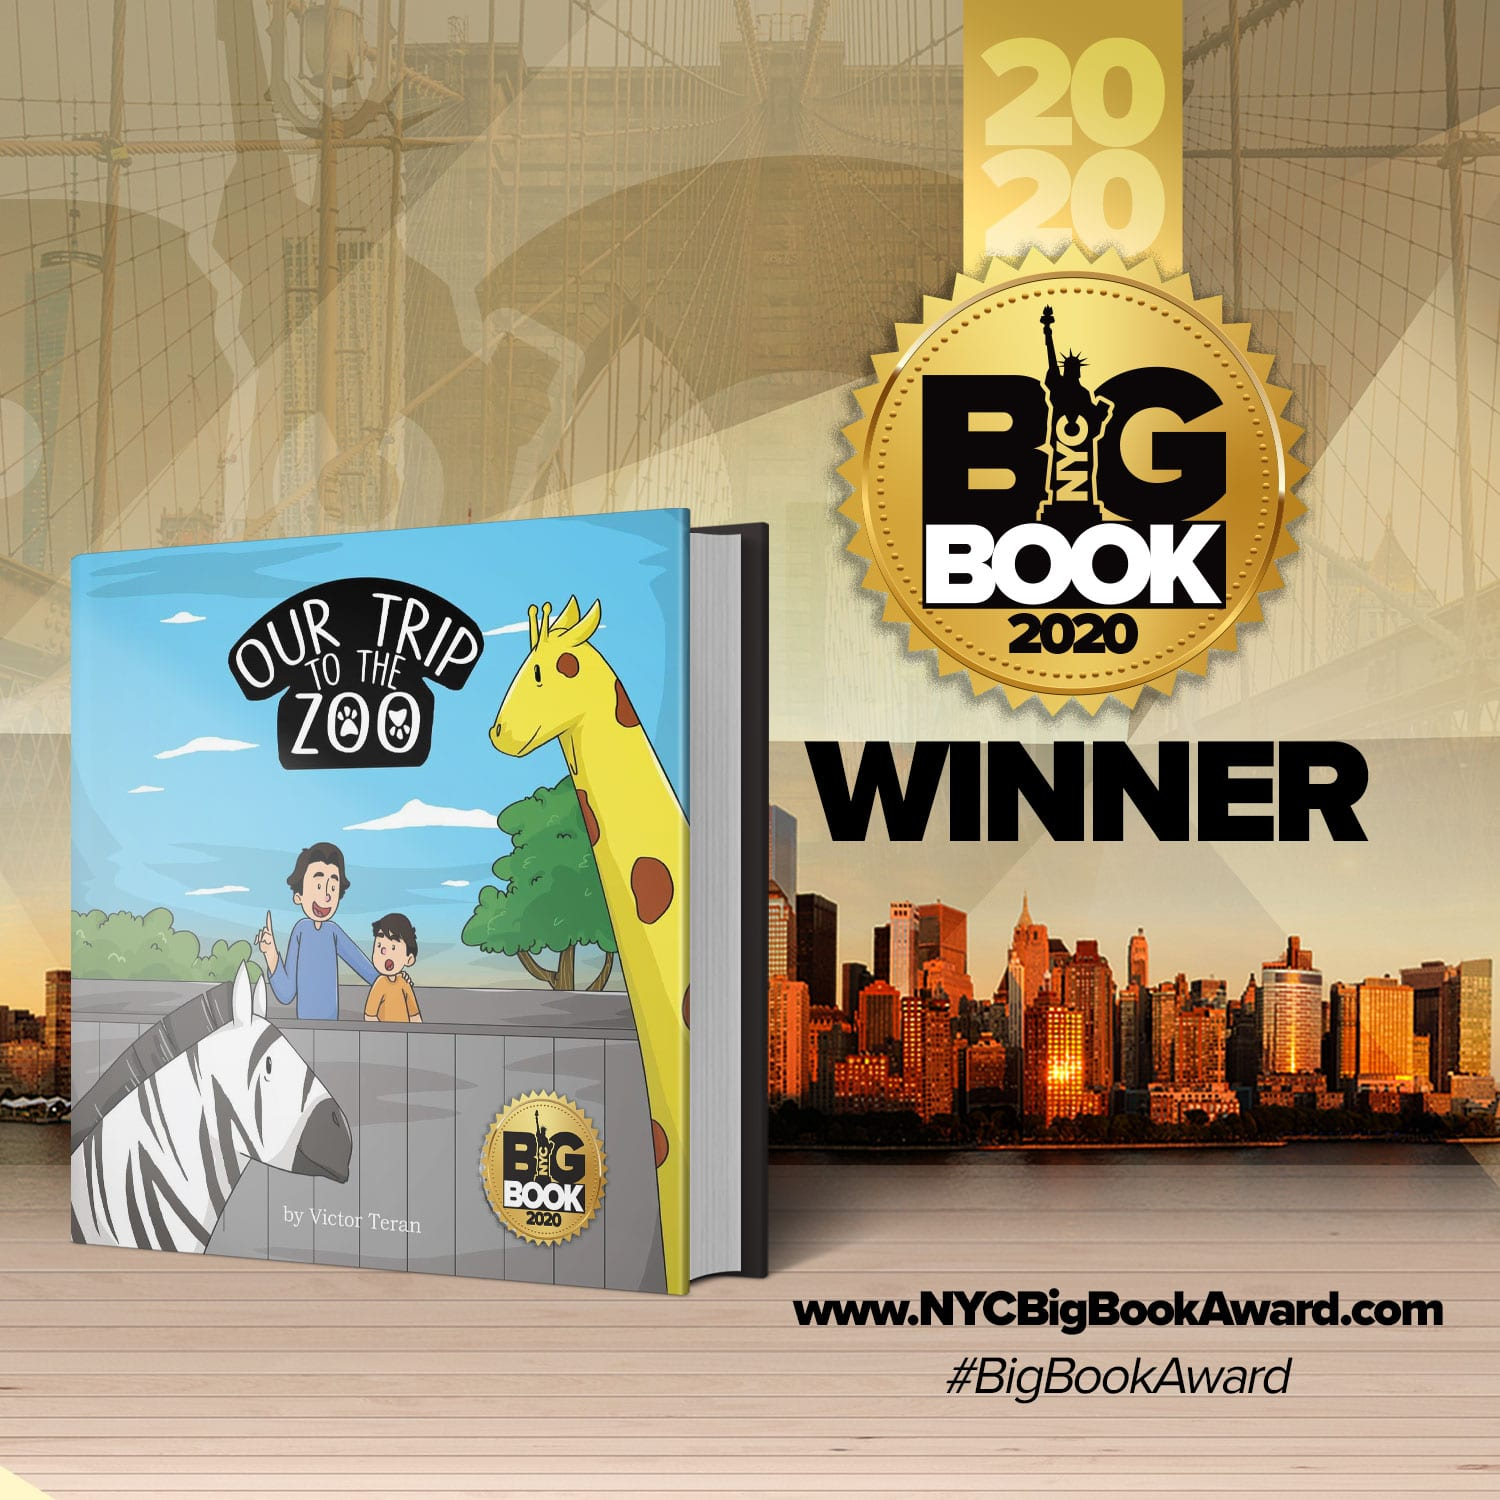 OUR TRIP TO THE ZOO' – 2020 NYC BIG BOOK AWARD WINNER